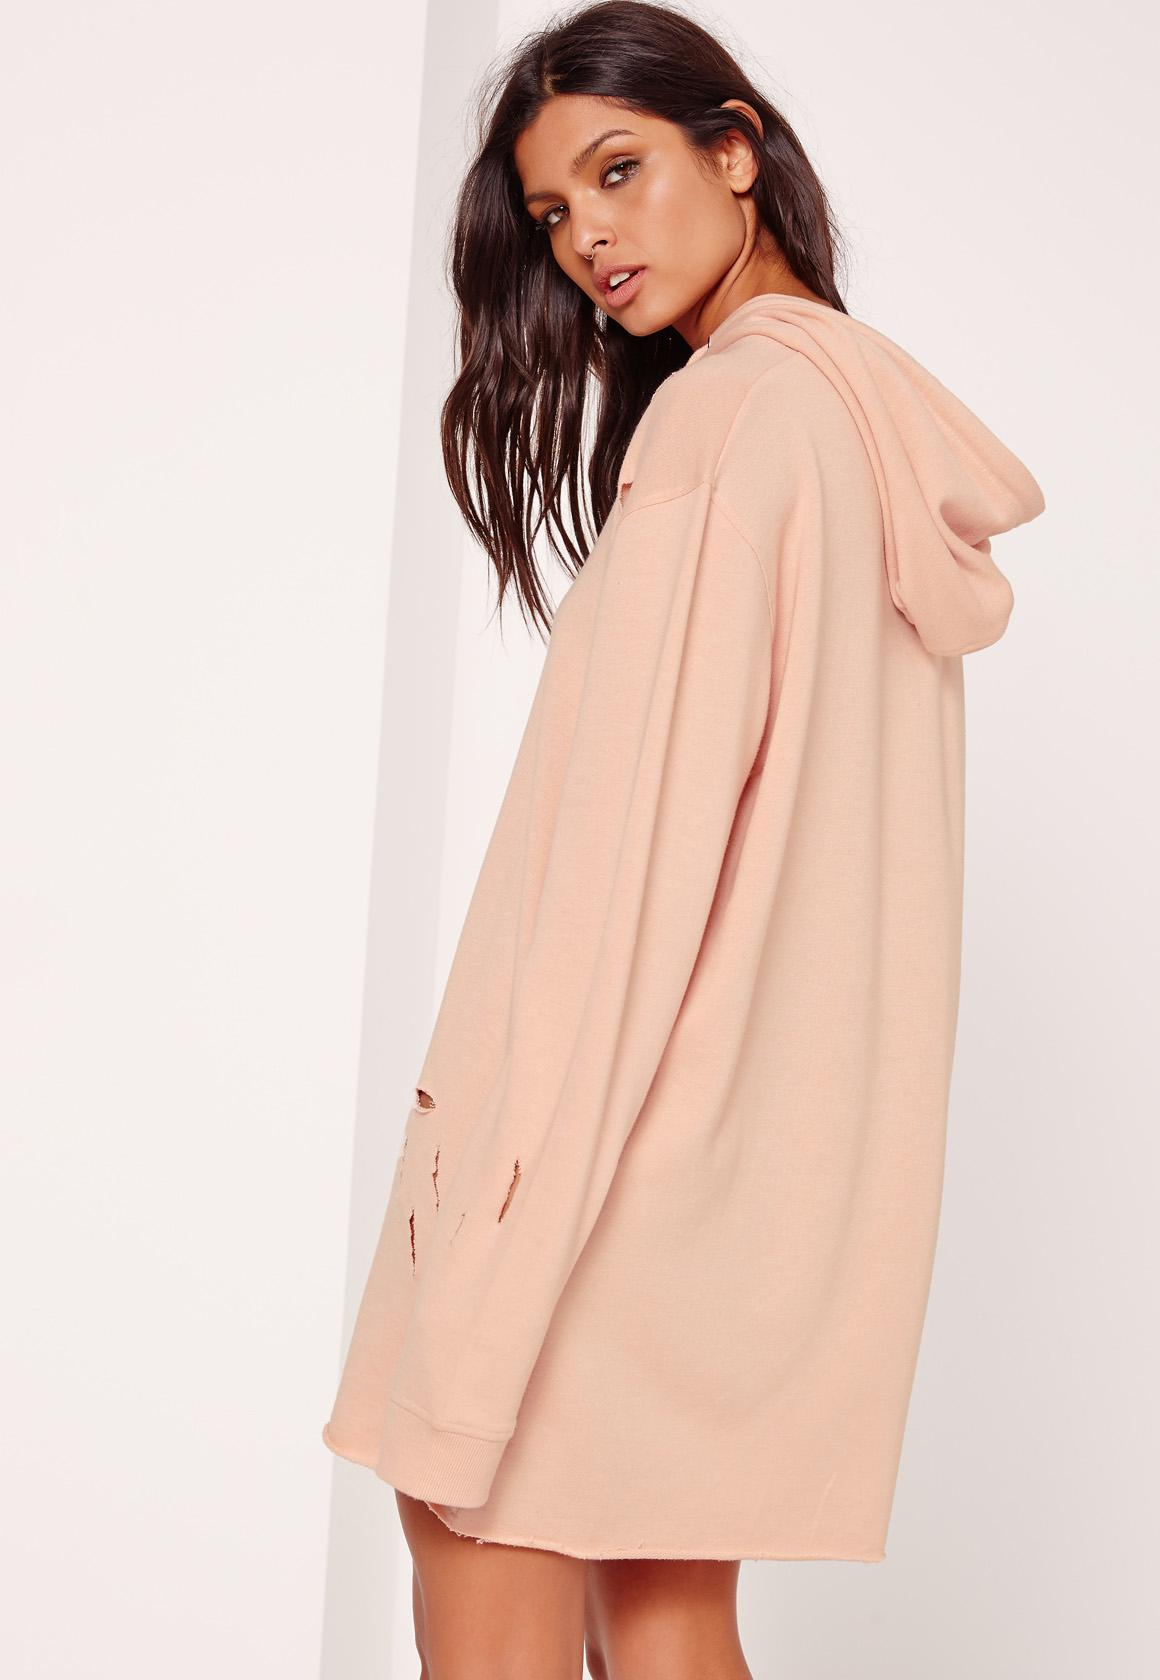 Petite Nude Ripped Hooded Sweater Dress [ZDC_469297] - $29.99 : Shop